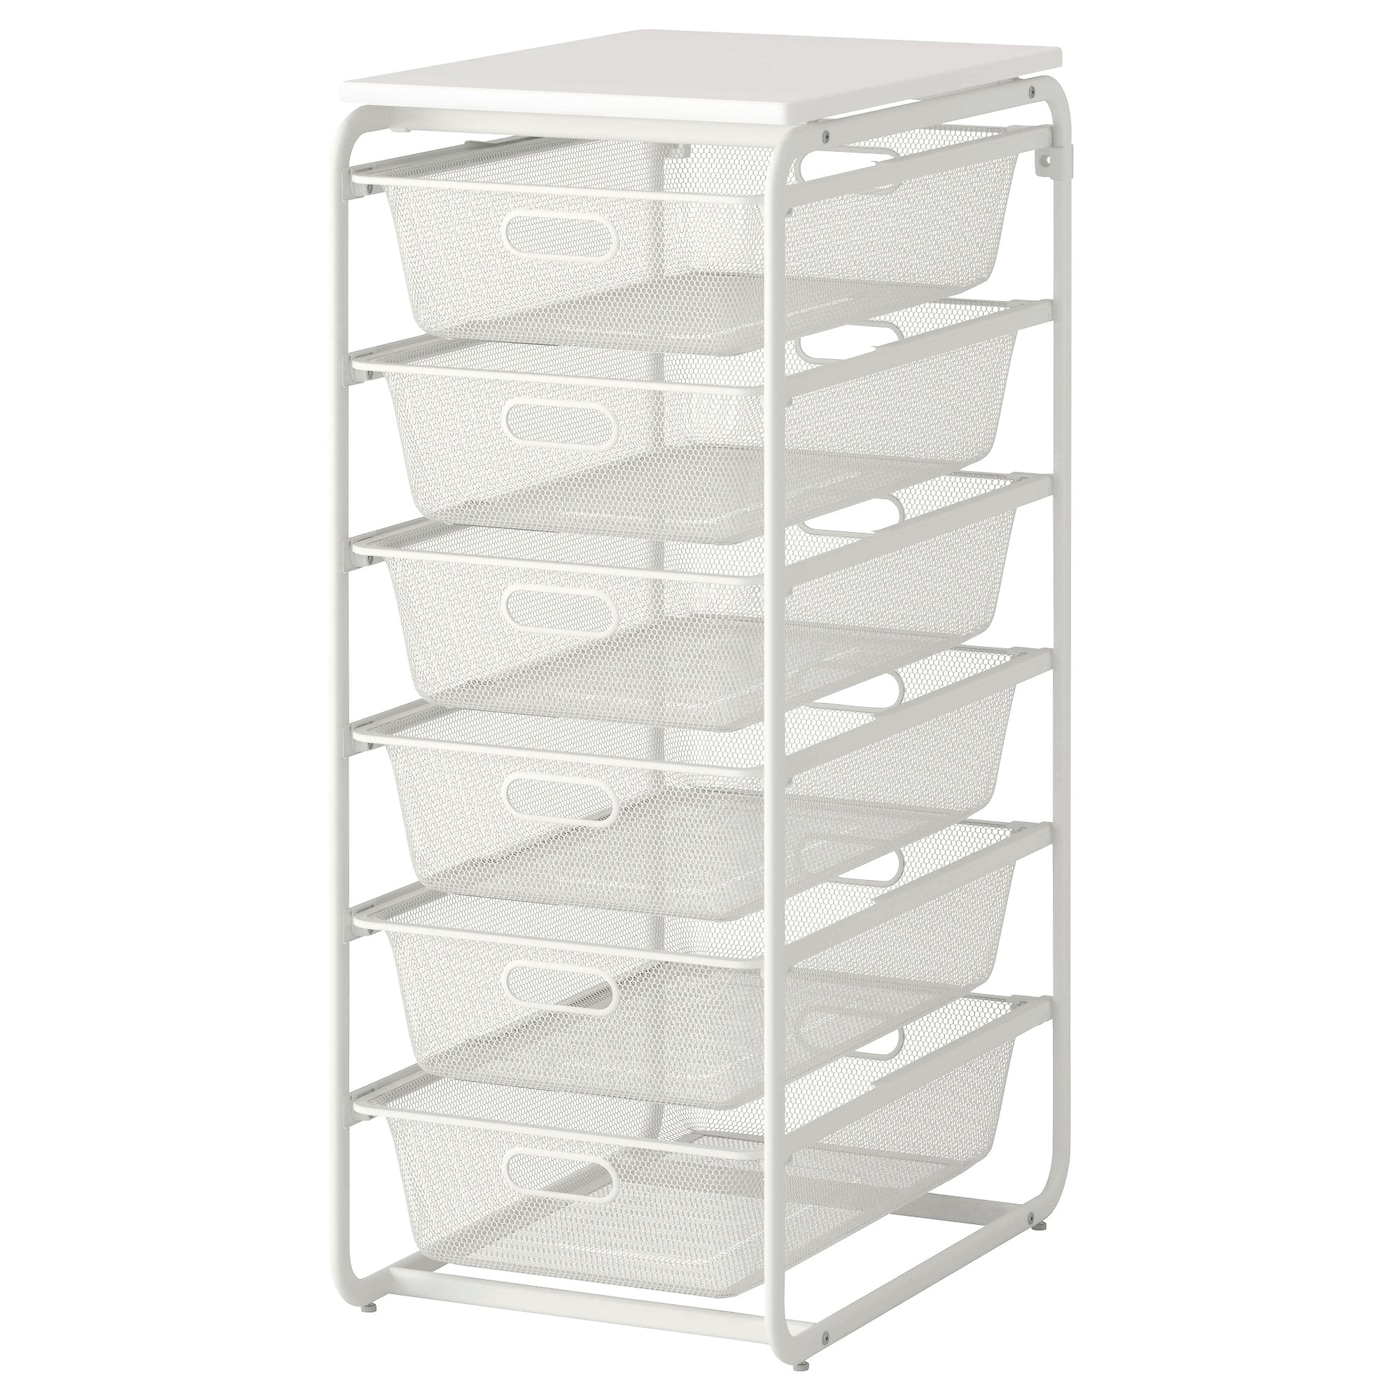 IKEA ALGOT frame/6 mesh baskets/top shelf